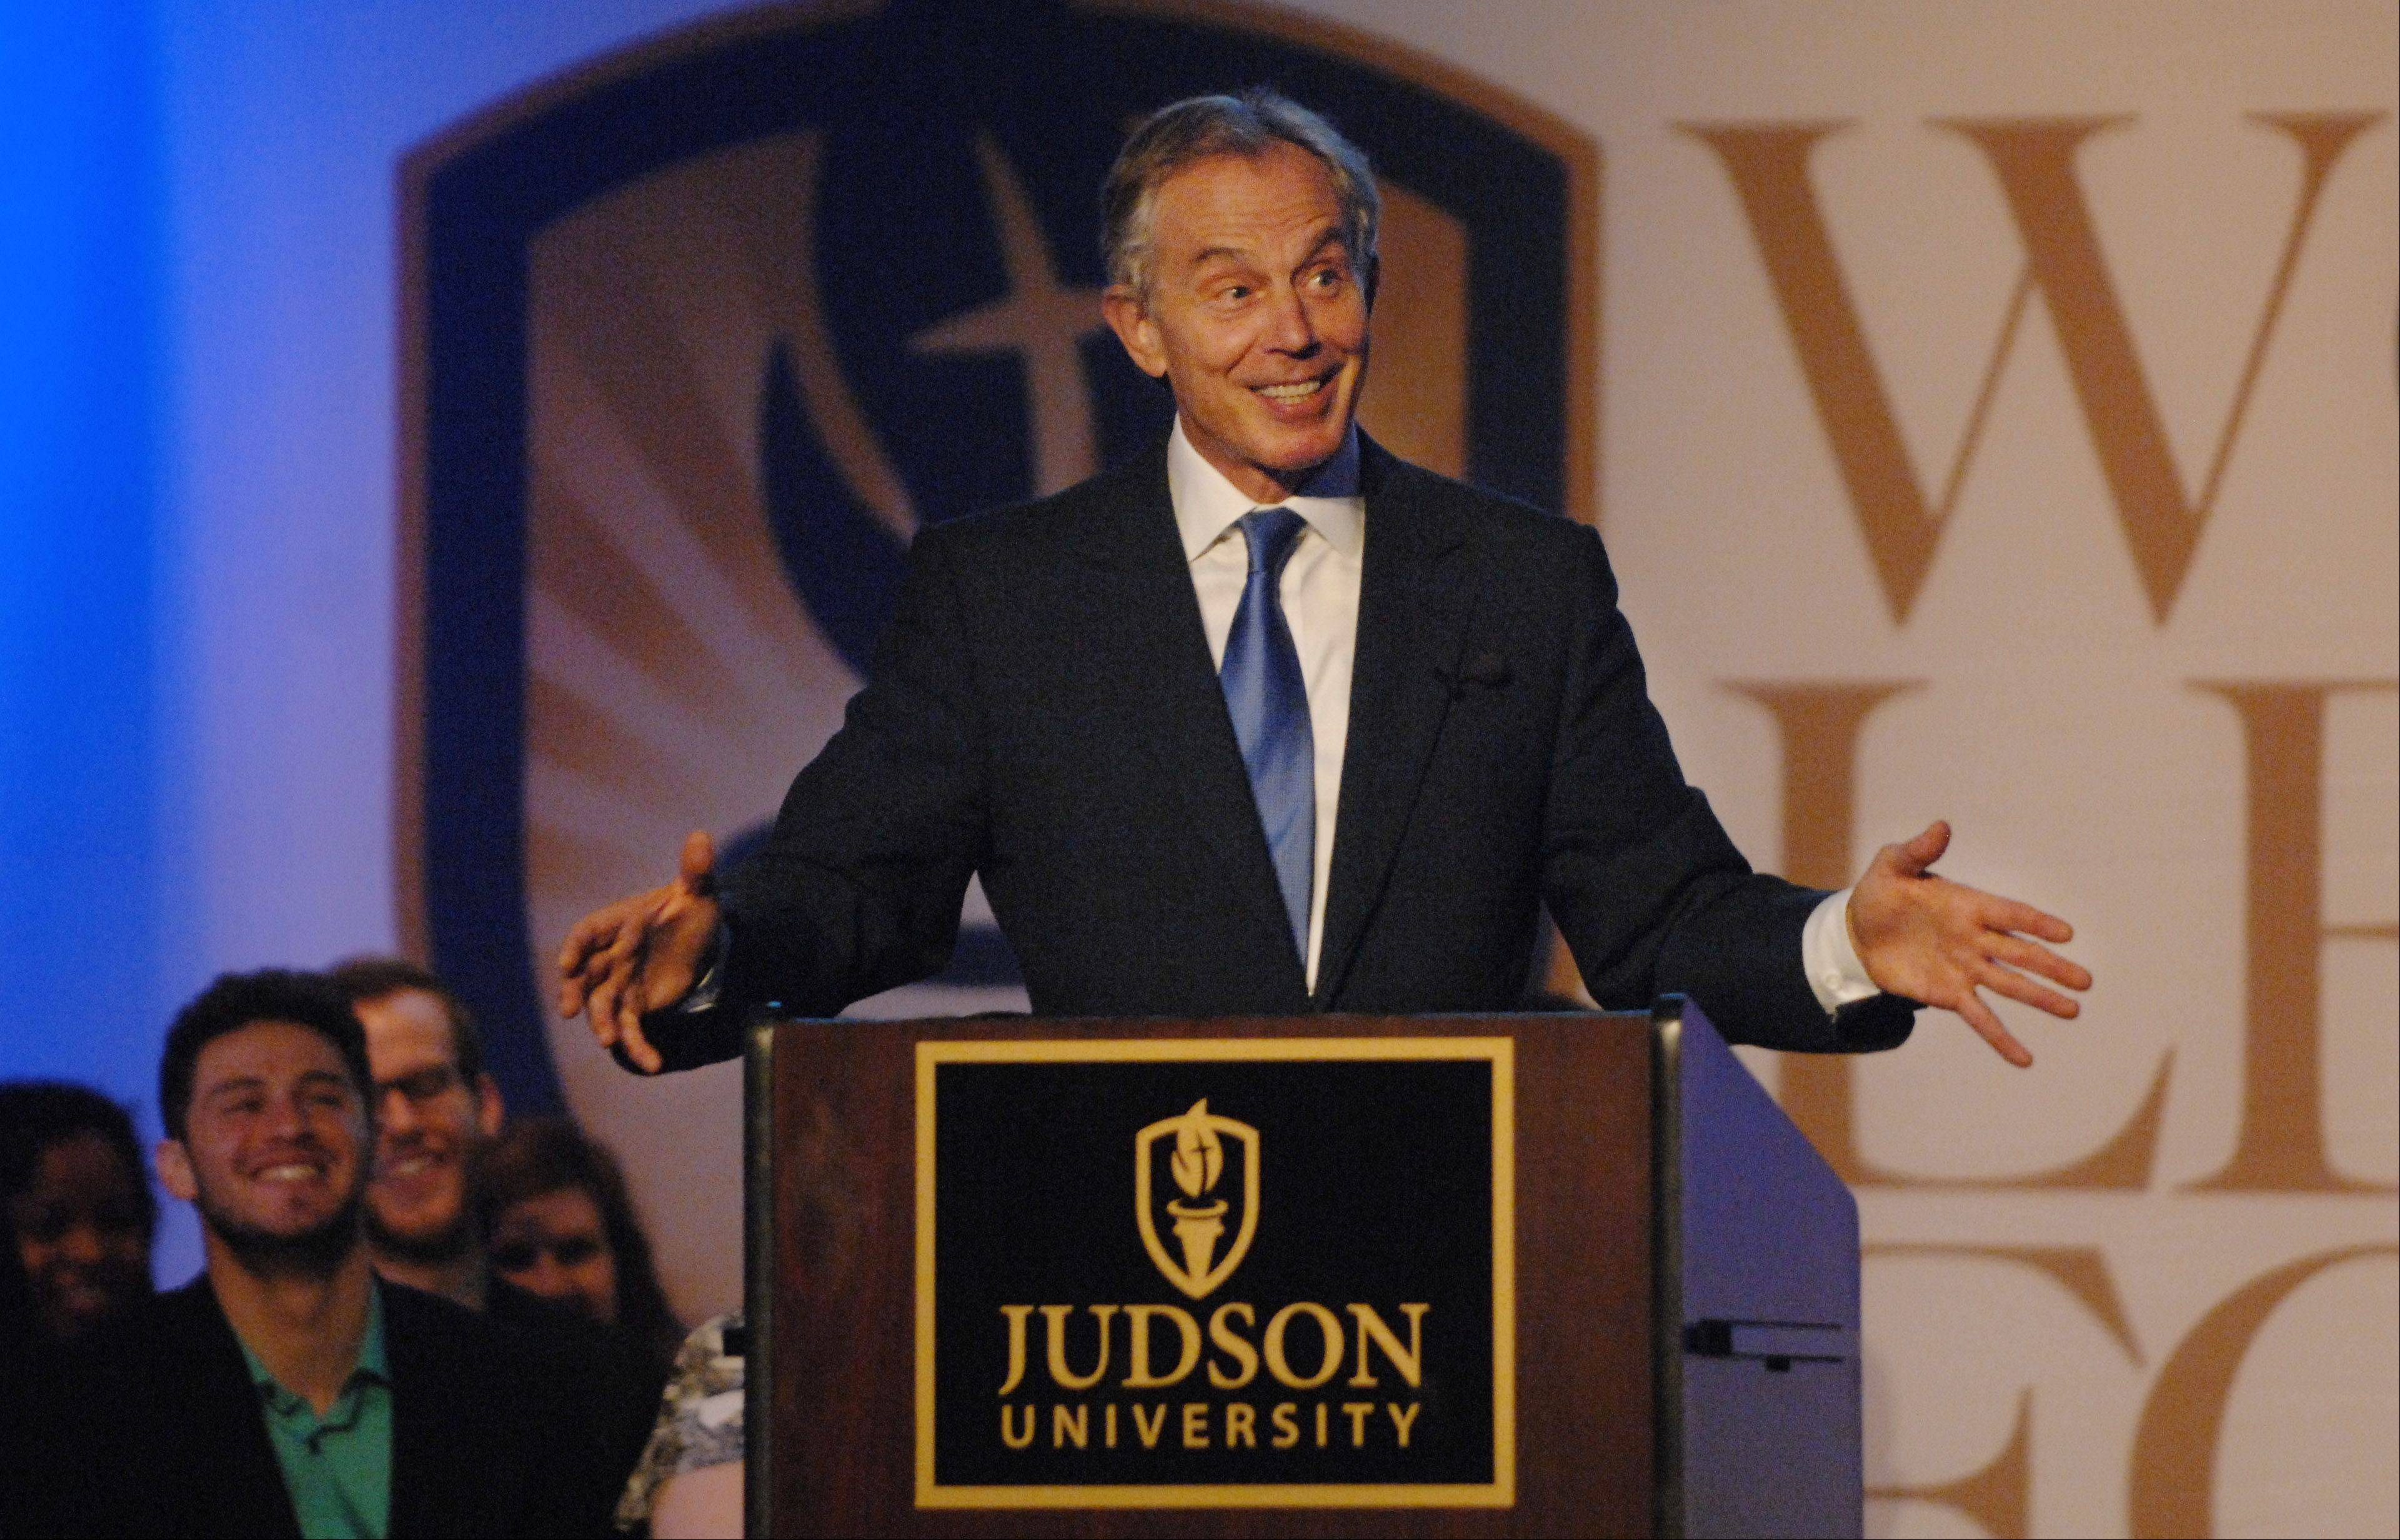 Former British Prime Minister Tony Blair offered a mix of personal and political notes at Judson University Friday.